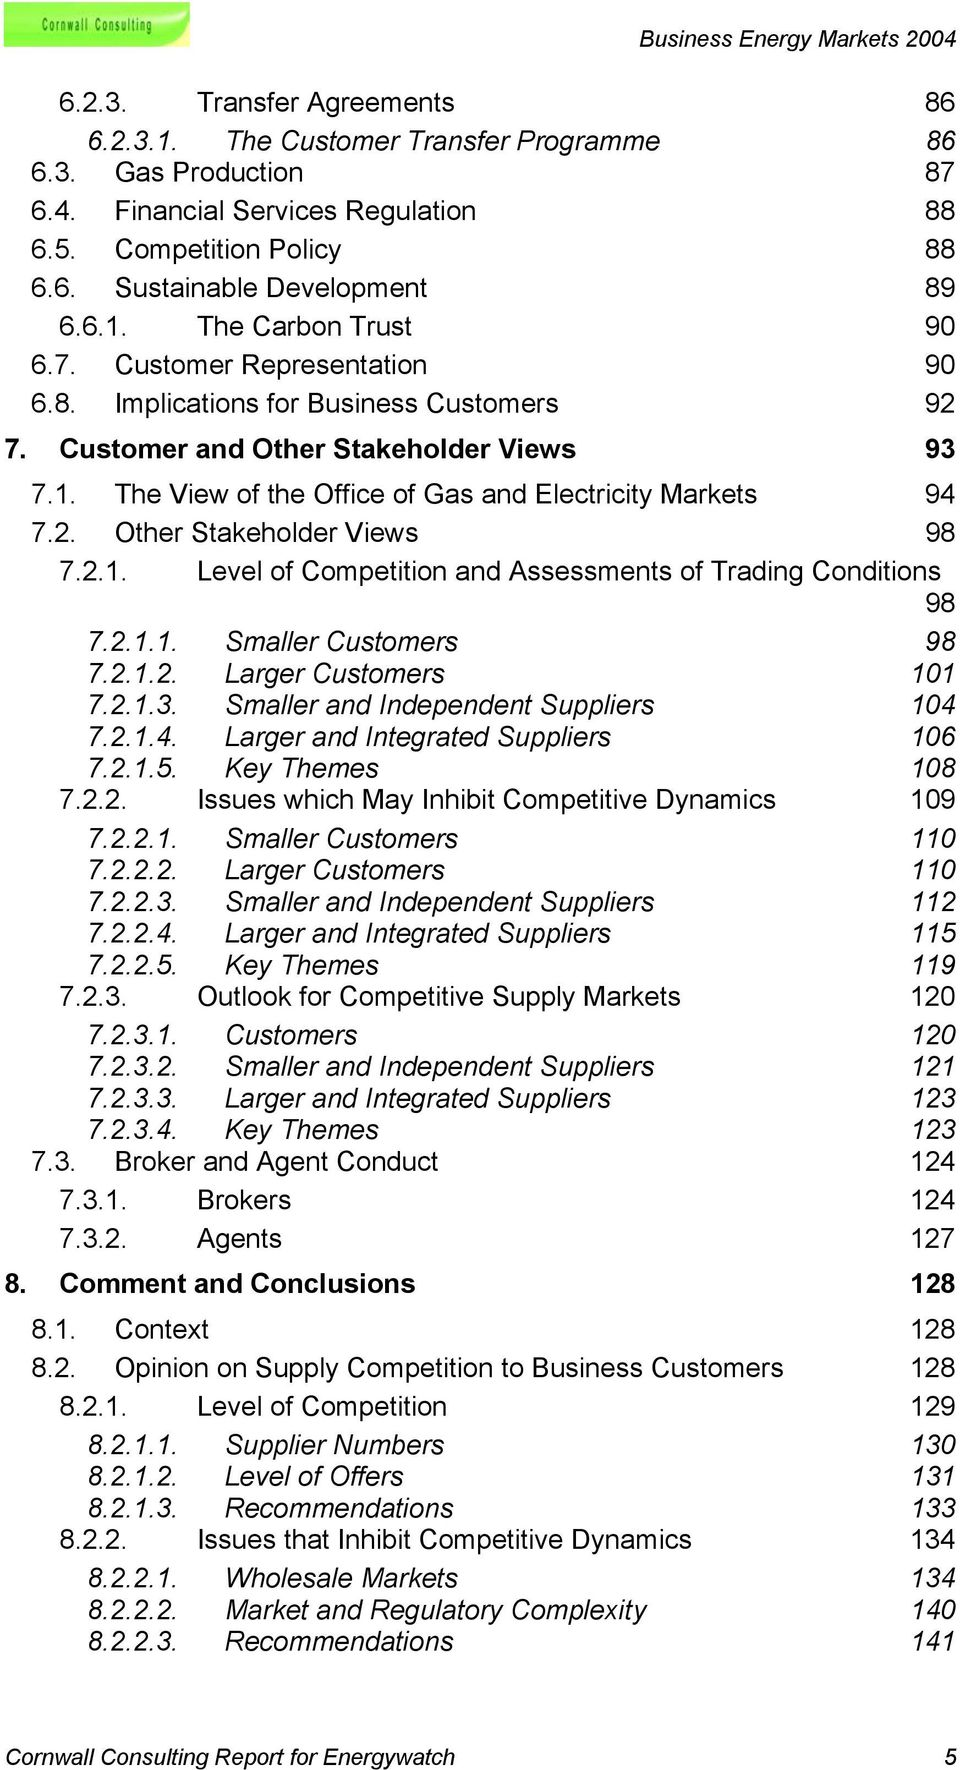 2.1. Level of Competition and Assessments of Trading Conditions 98 7.2.1.1. Smaller Customers 98 7.2.1.2. Larger Customers 101 7.2.1.3. Smaller and Independent Suppliers 104